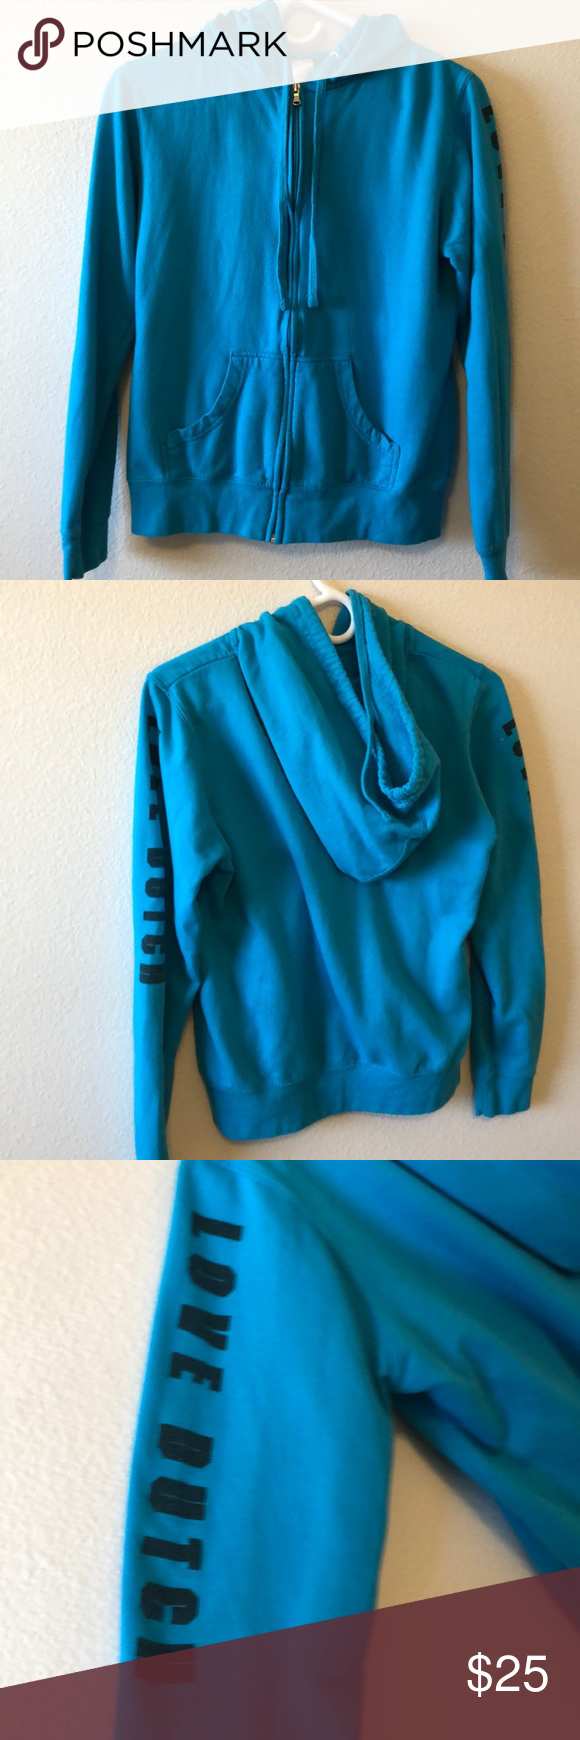 Dutch Bros Blue Zip Up Hoodie Women's Small Blue Zip Up Hoodie Dutch Bros Women's Small Says love Dutch Love Coffee down sleeves Dutch Bros Tops Sweatshirts & Hoodies #dutchbros Dutch Bros Blue Zip Up Hoodie Women's Small Blue Zip Up Hoodie Dutch Bros Women's Small Says love Dutch Love Coffee down sleeves Dutch Bros Tops Sweatshirts & Hoodies #dutchbros